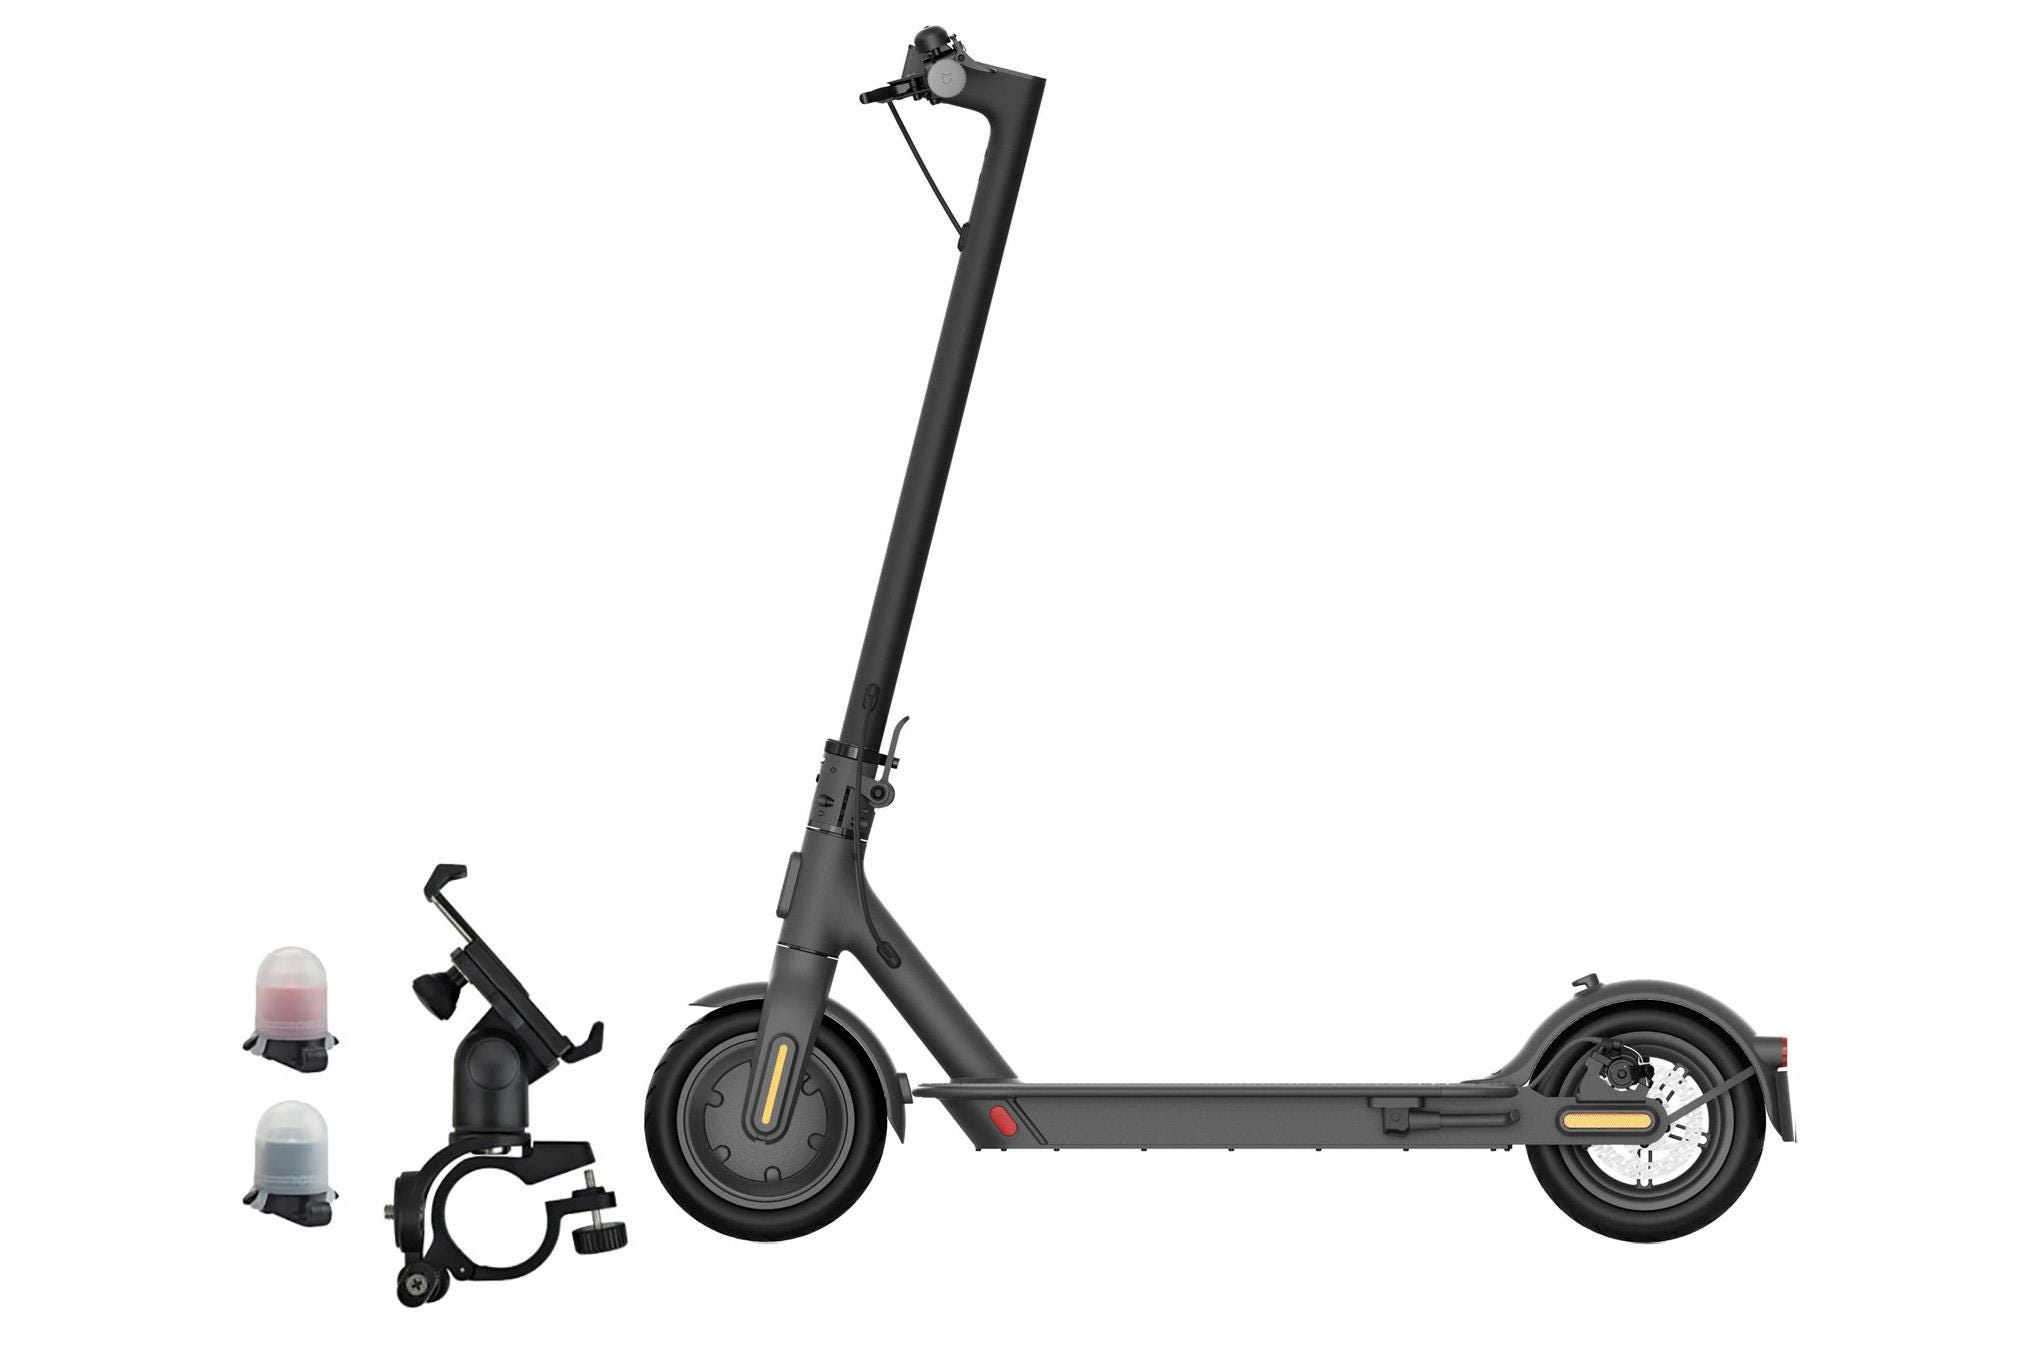 Xiaomi Mi Electric Scooter Essential + FREE Joby GripTight Bike Phone Mount    Cycle Light Kit Worth